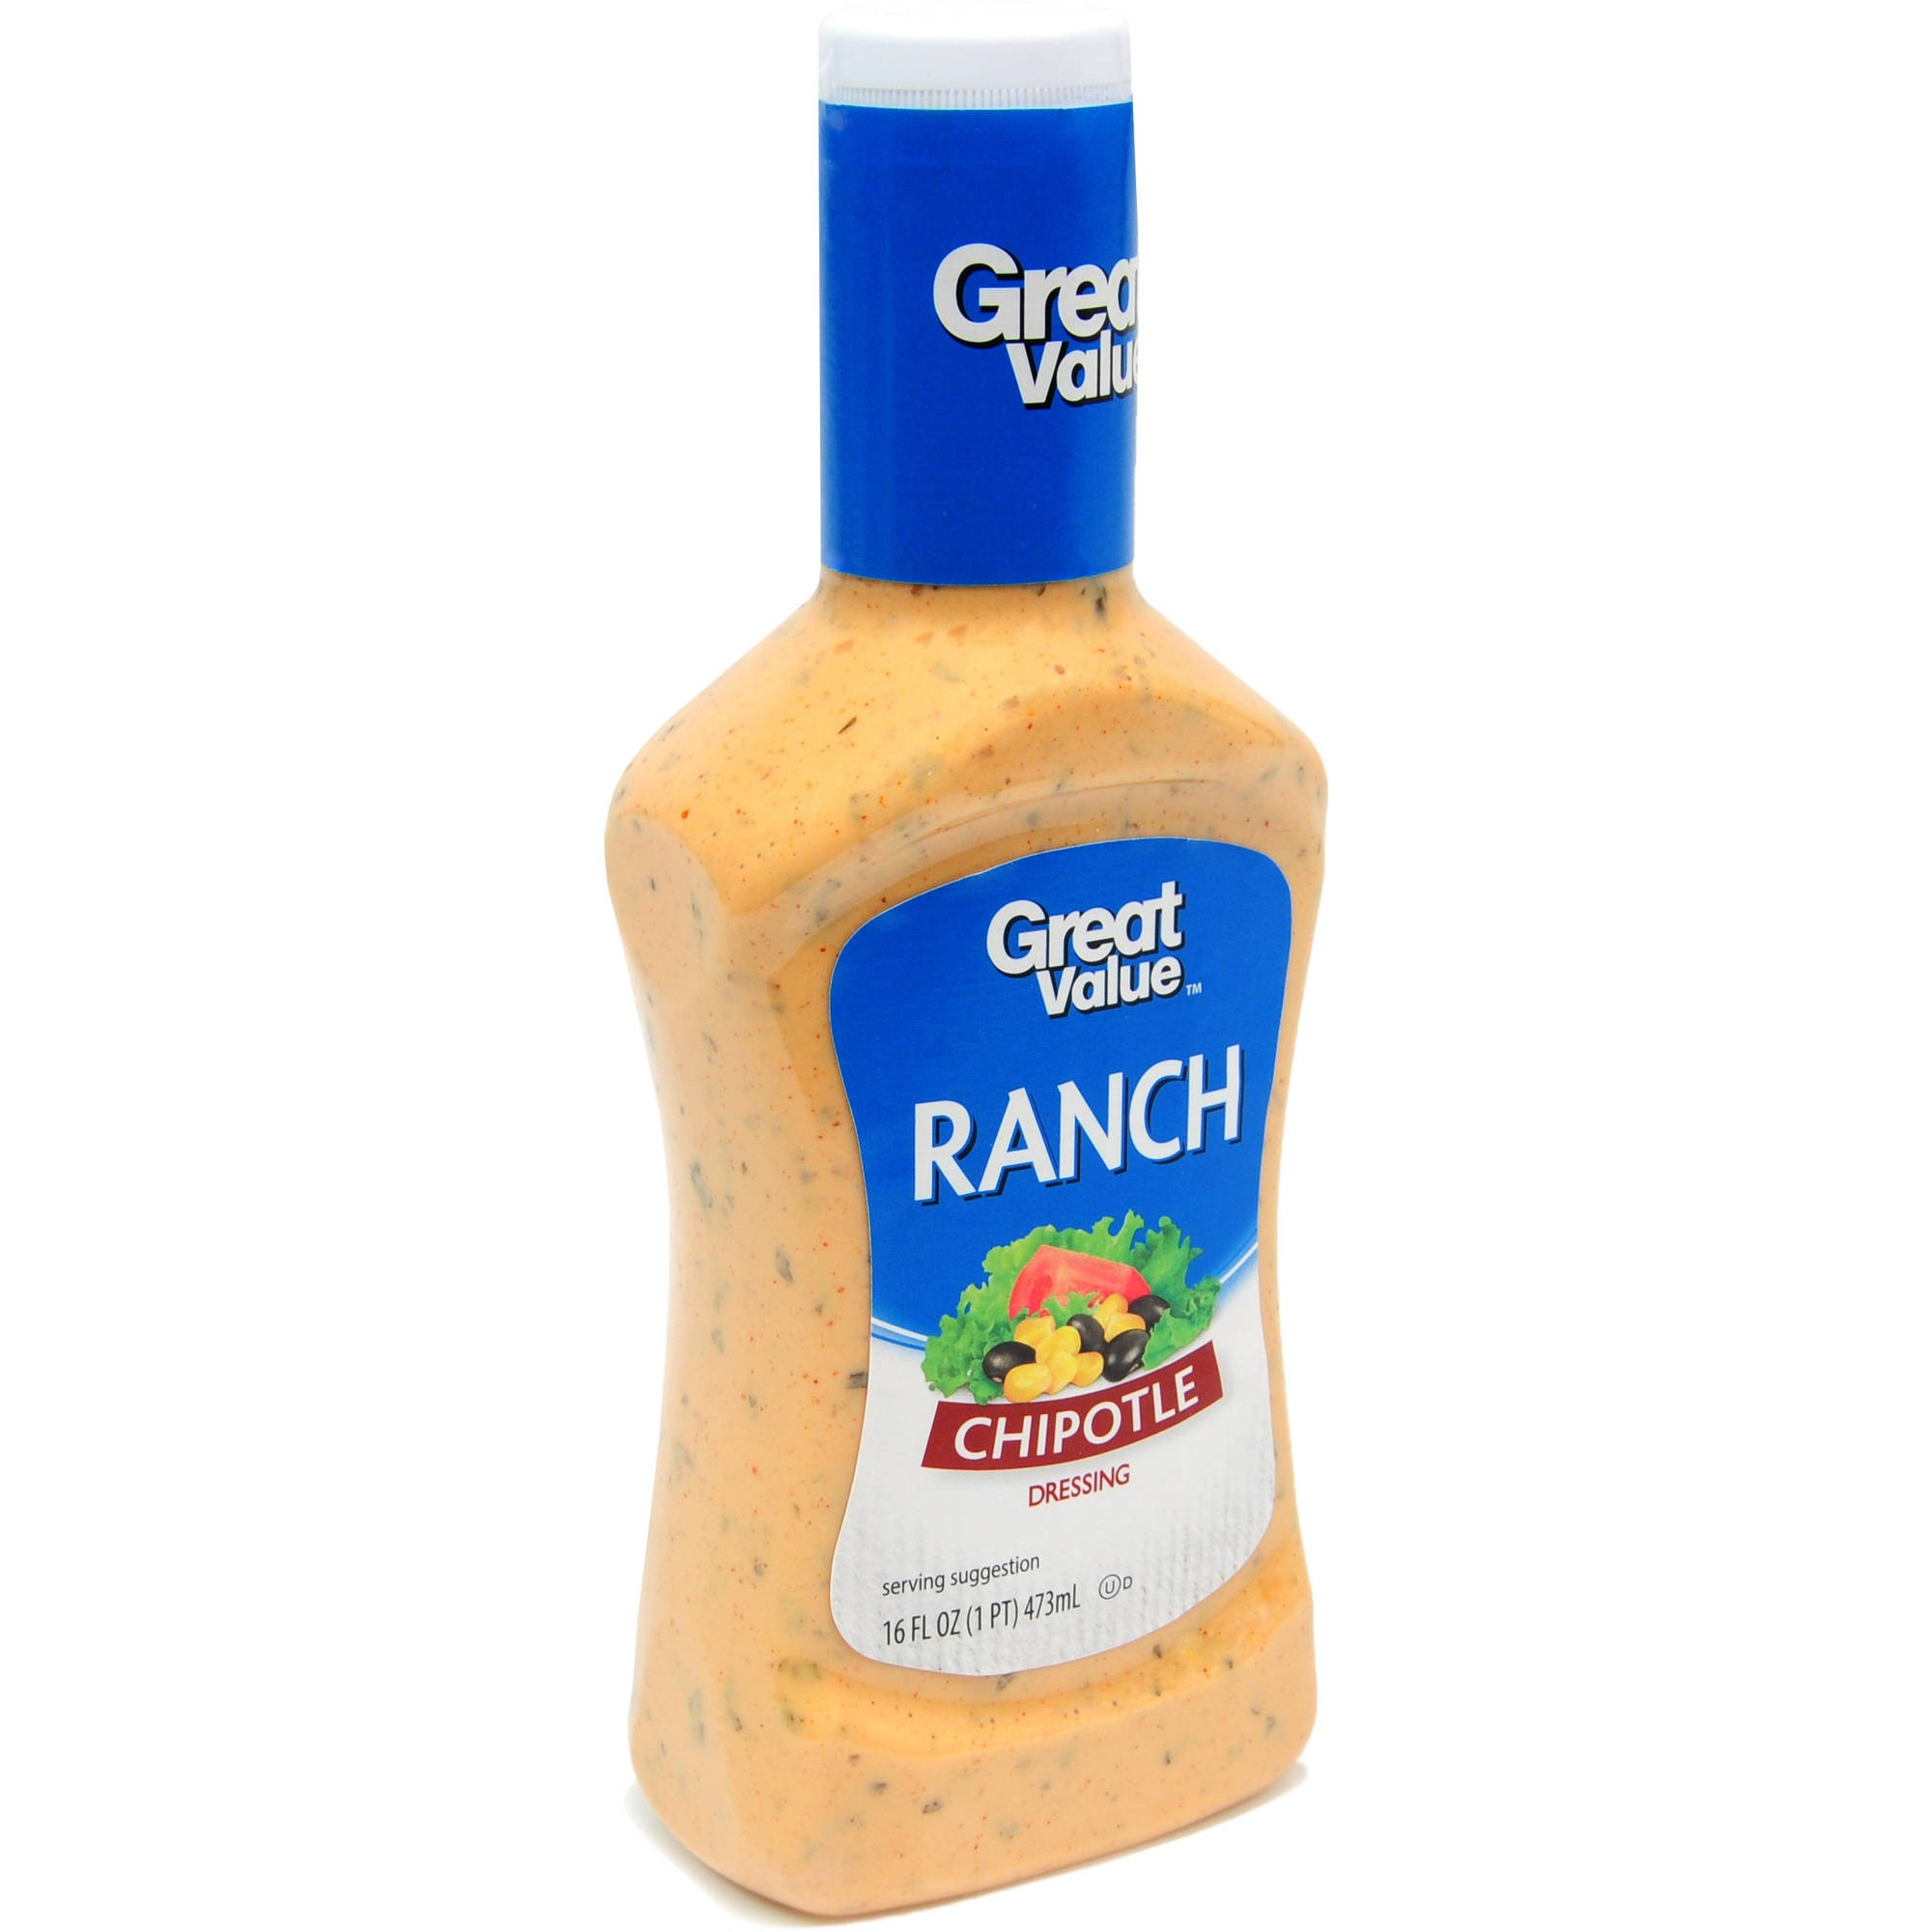 Great Value Chipotle Ranch Dressing & Dip, 16 oz